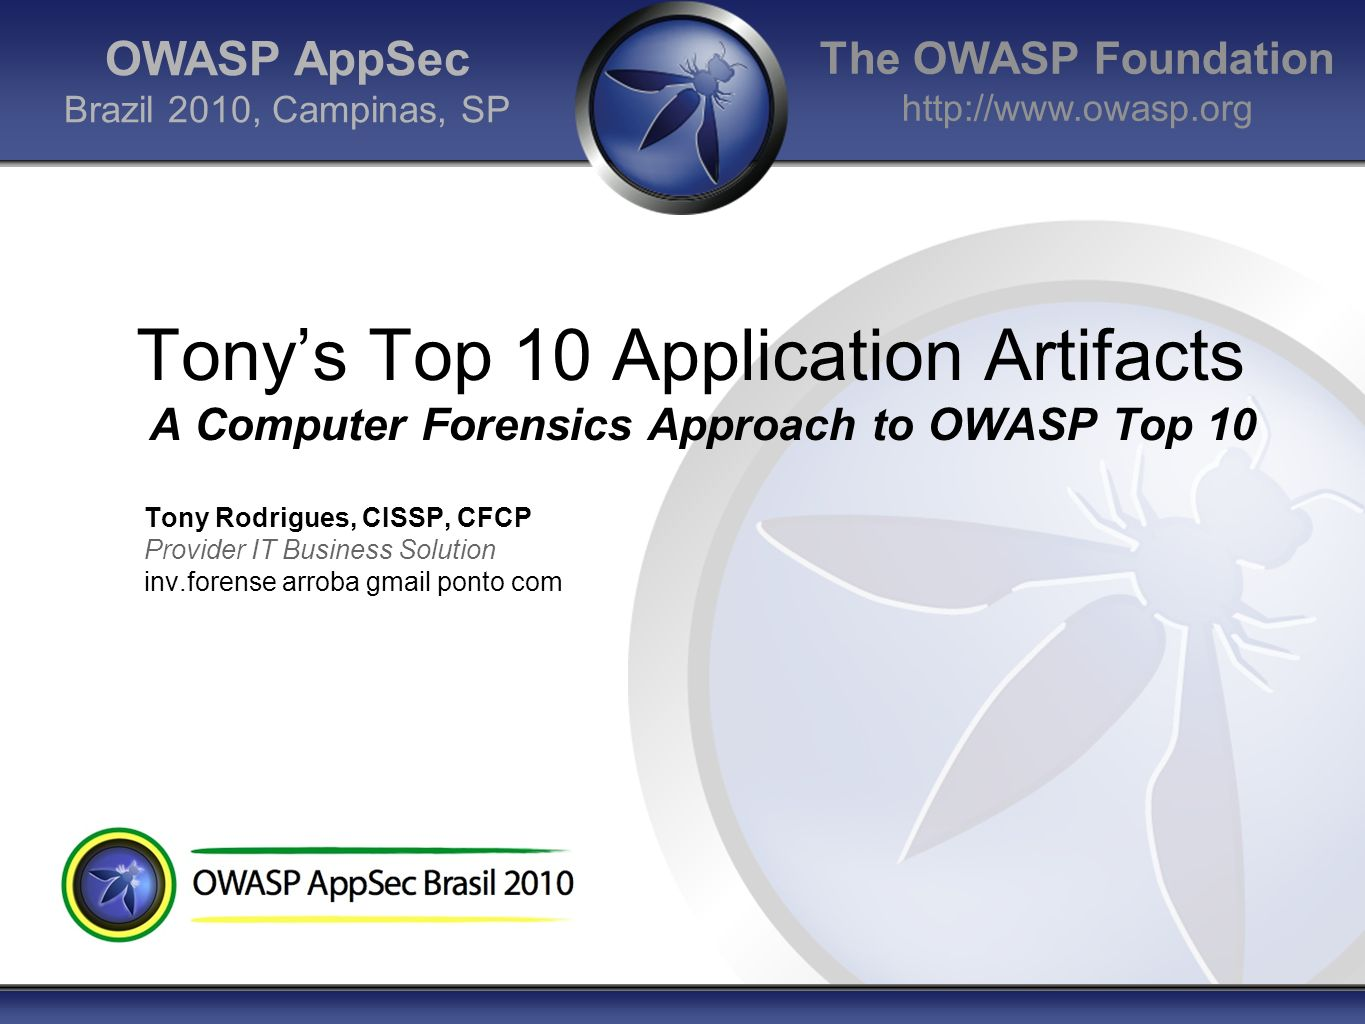 OWASP AppSec Brazil 2010, Campinas, SP. Tony's Top 10 Application Artifacts A Computer Forensics Approach to OWASP Top 10.